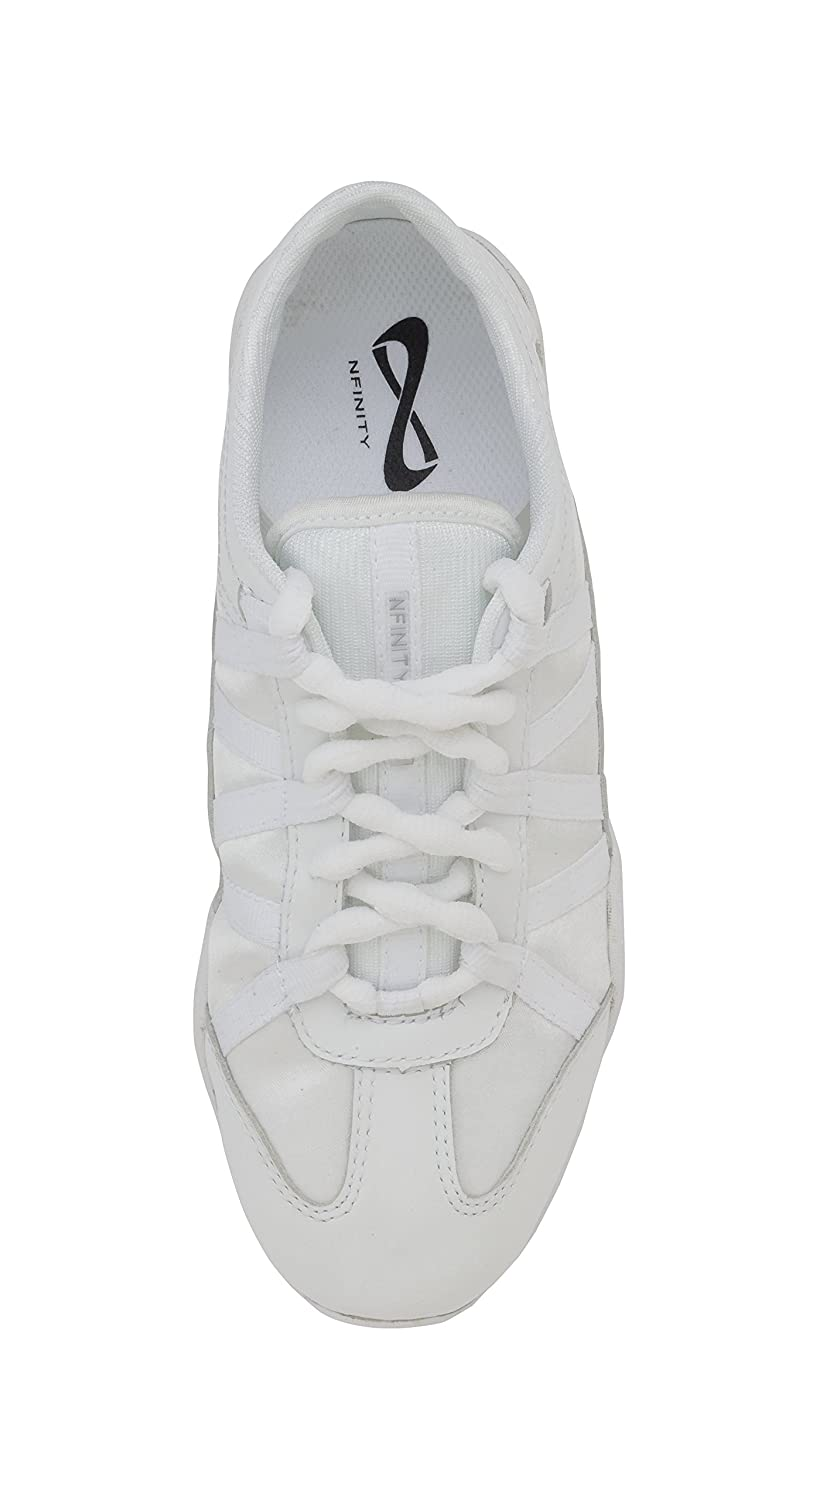 Nfinity B003ZVK736 Youth Evolution Cheer Shoes B003ZVK736 Nfinity Y13|White 72a54b